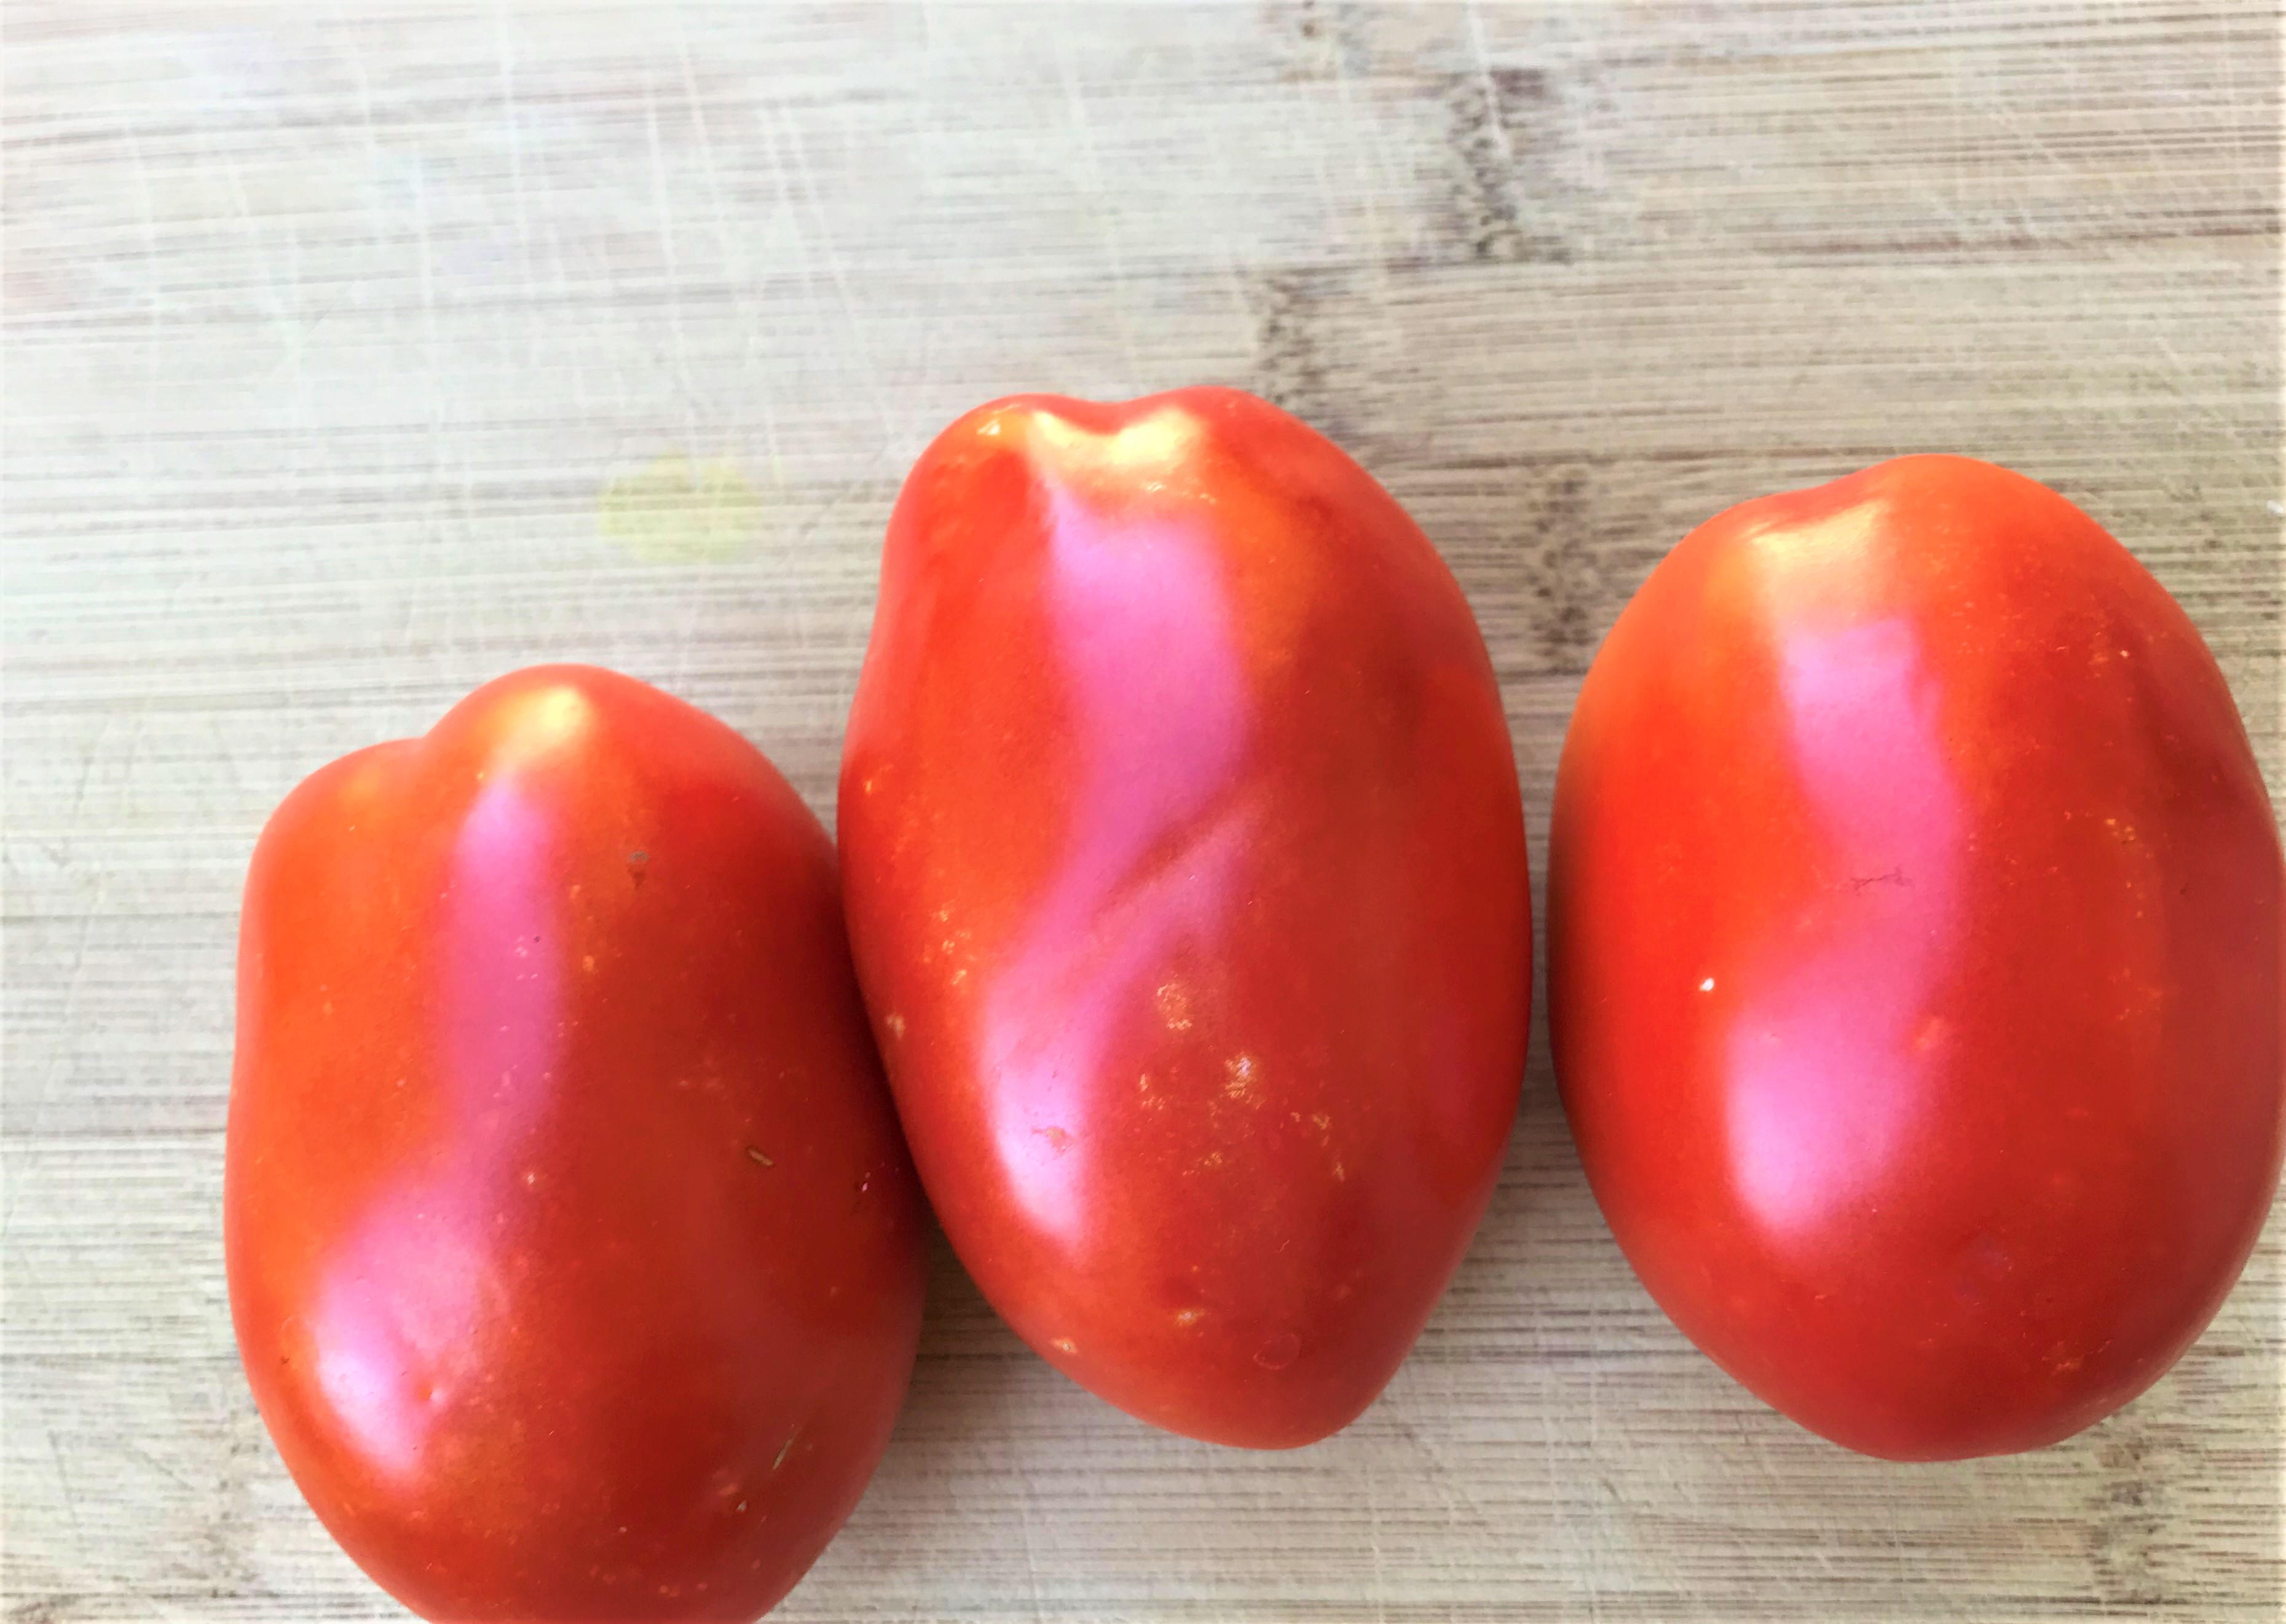 Plum or Roma tomatoes